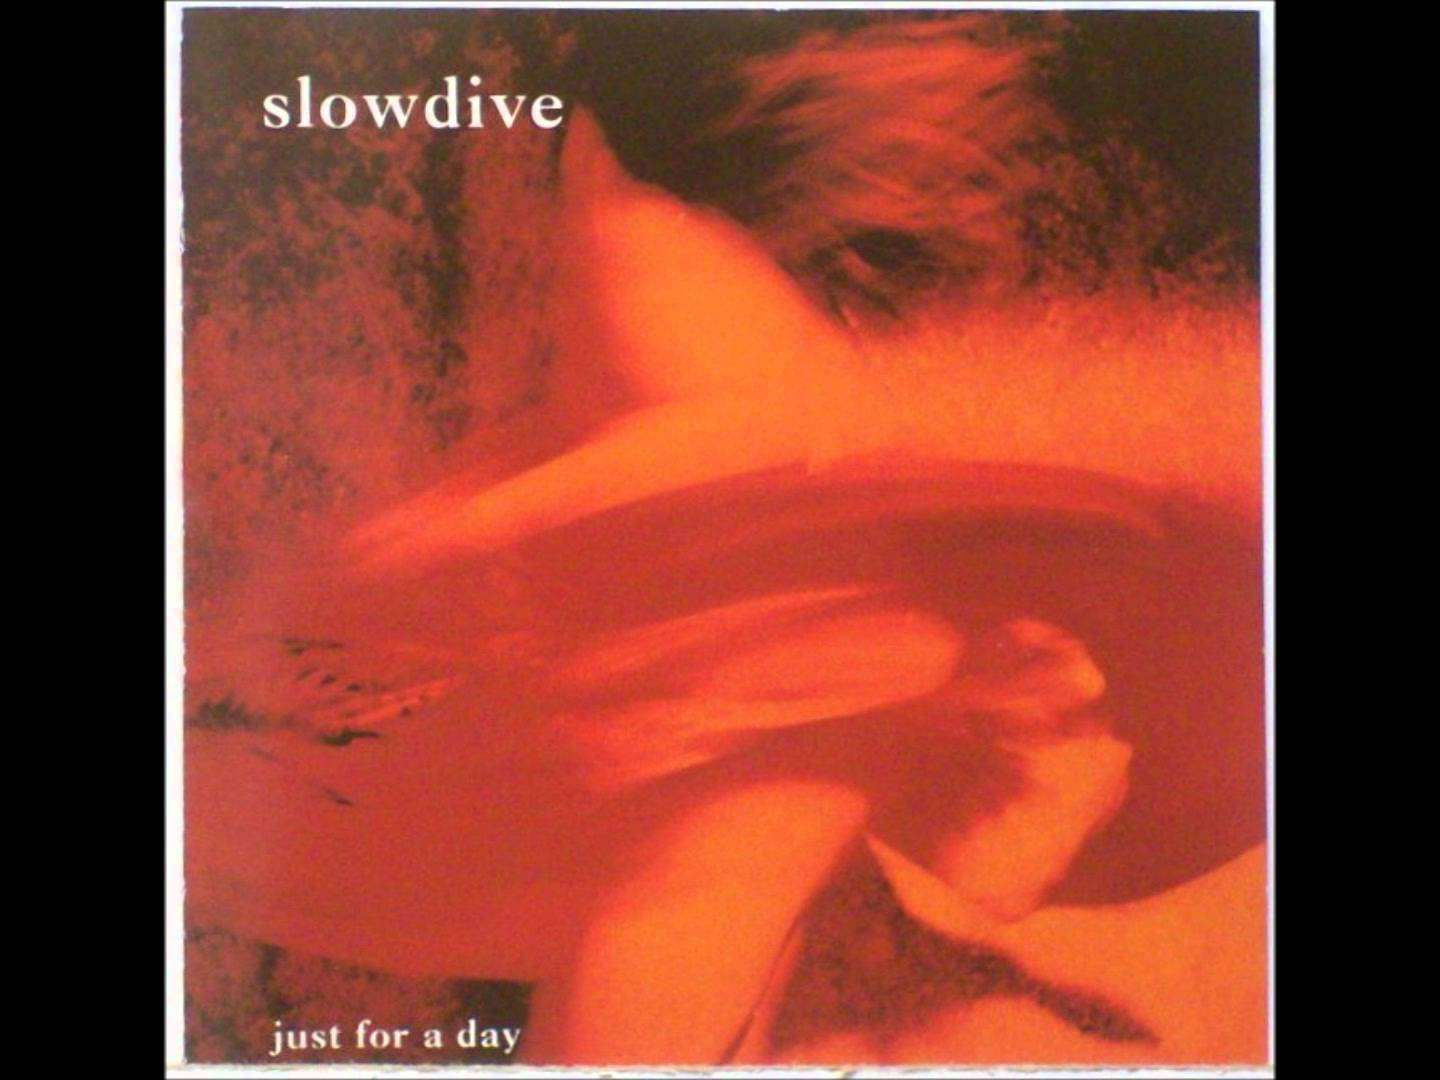 Slowdive - Celia's Dream - YouTube